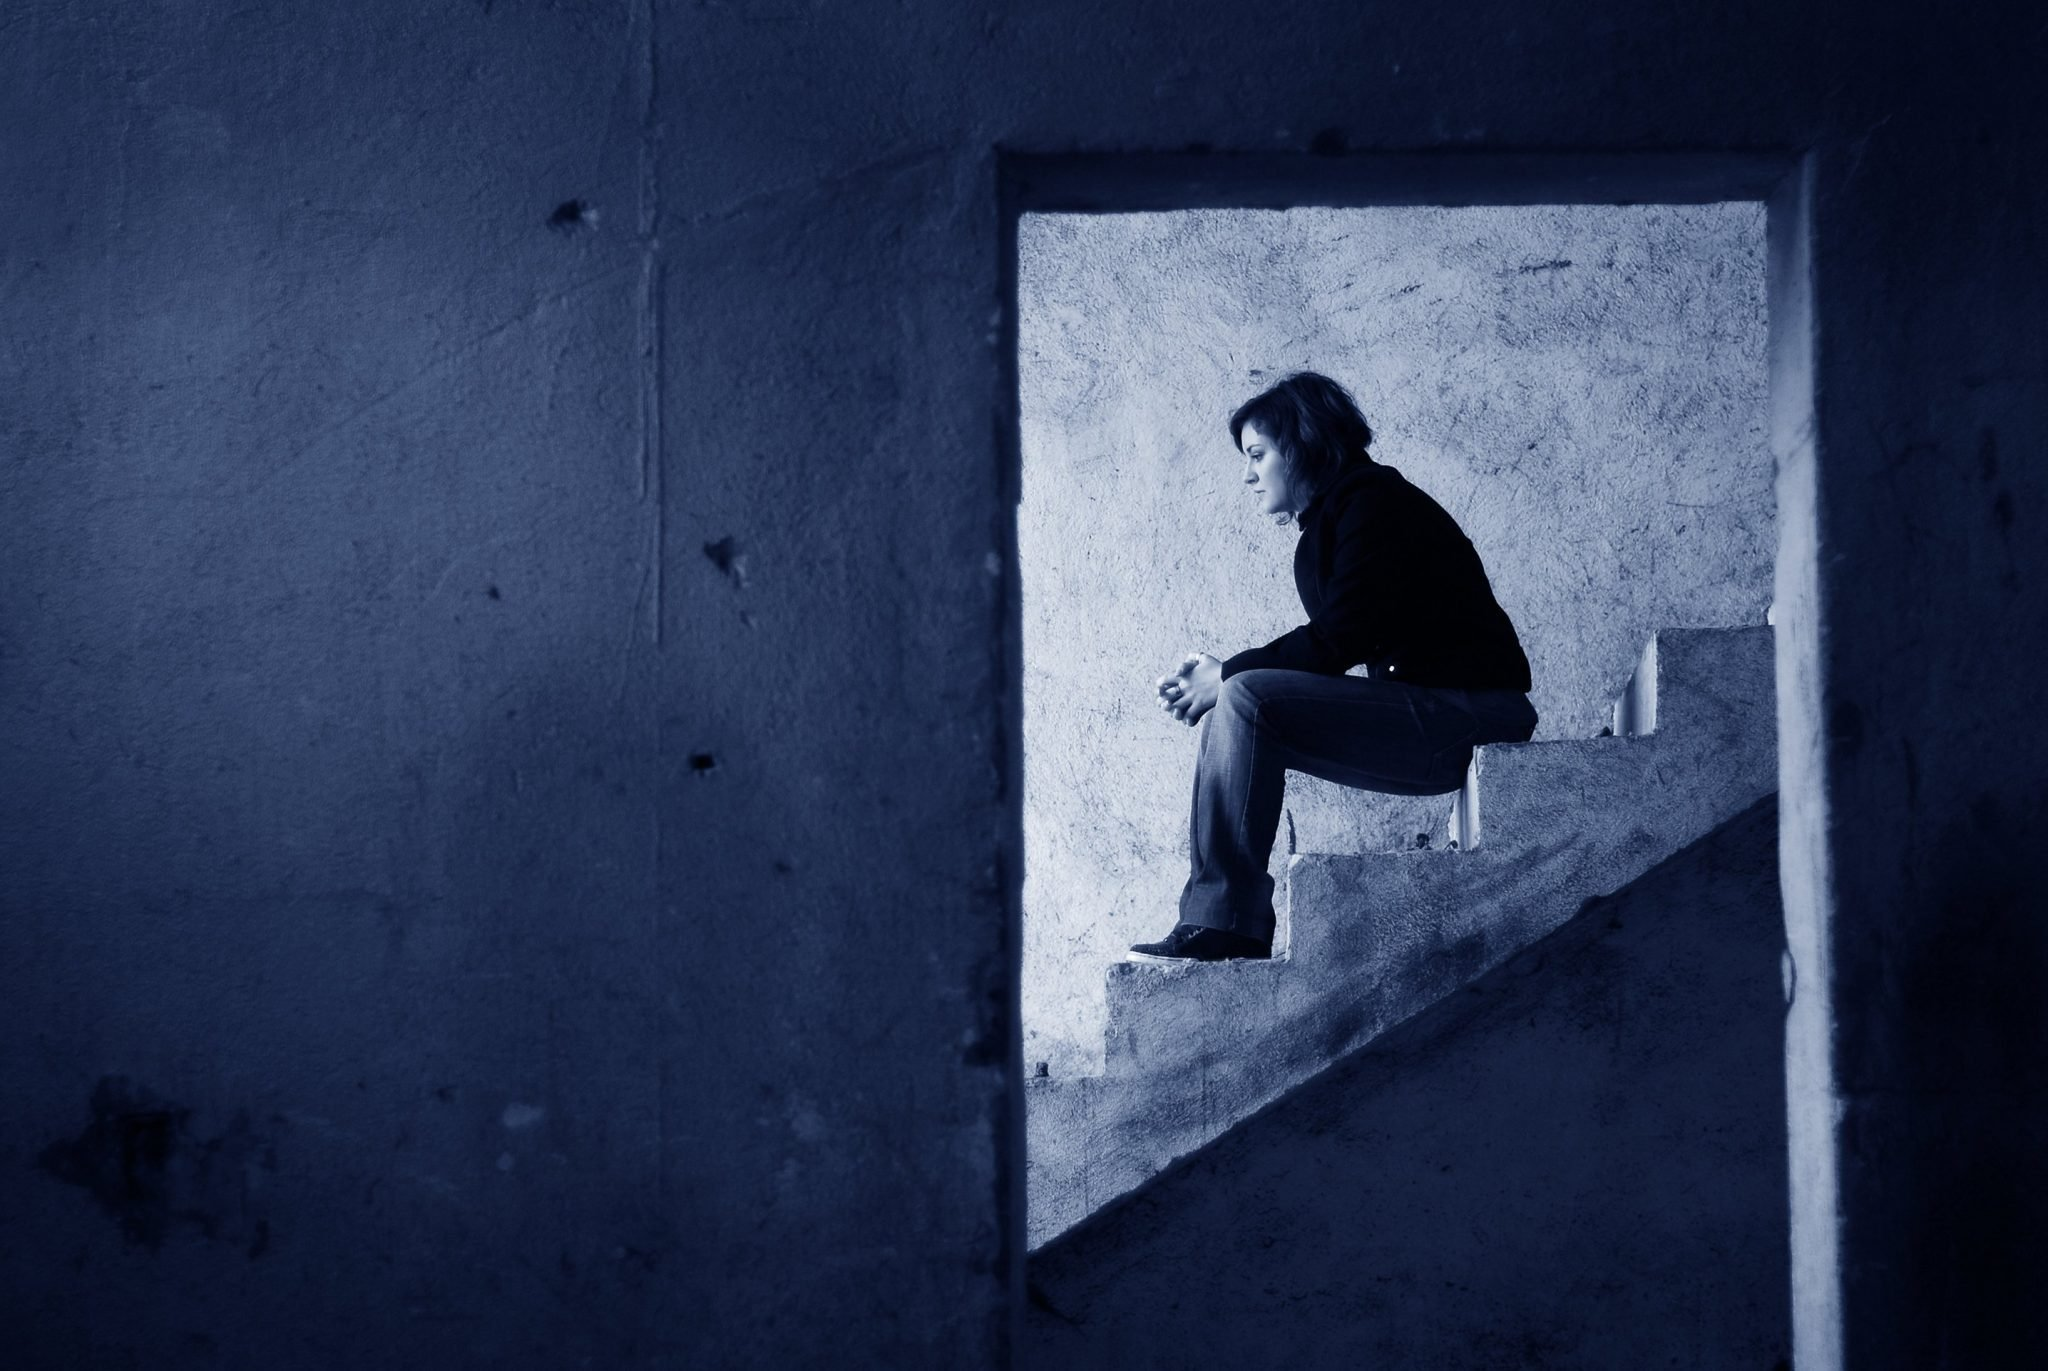 20 Things Suicidal People Wish They Could Tell You